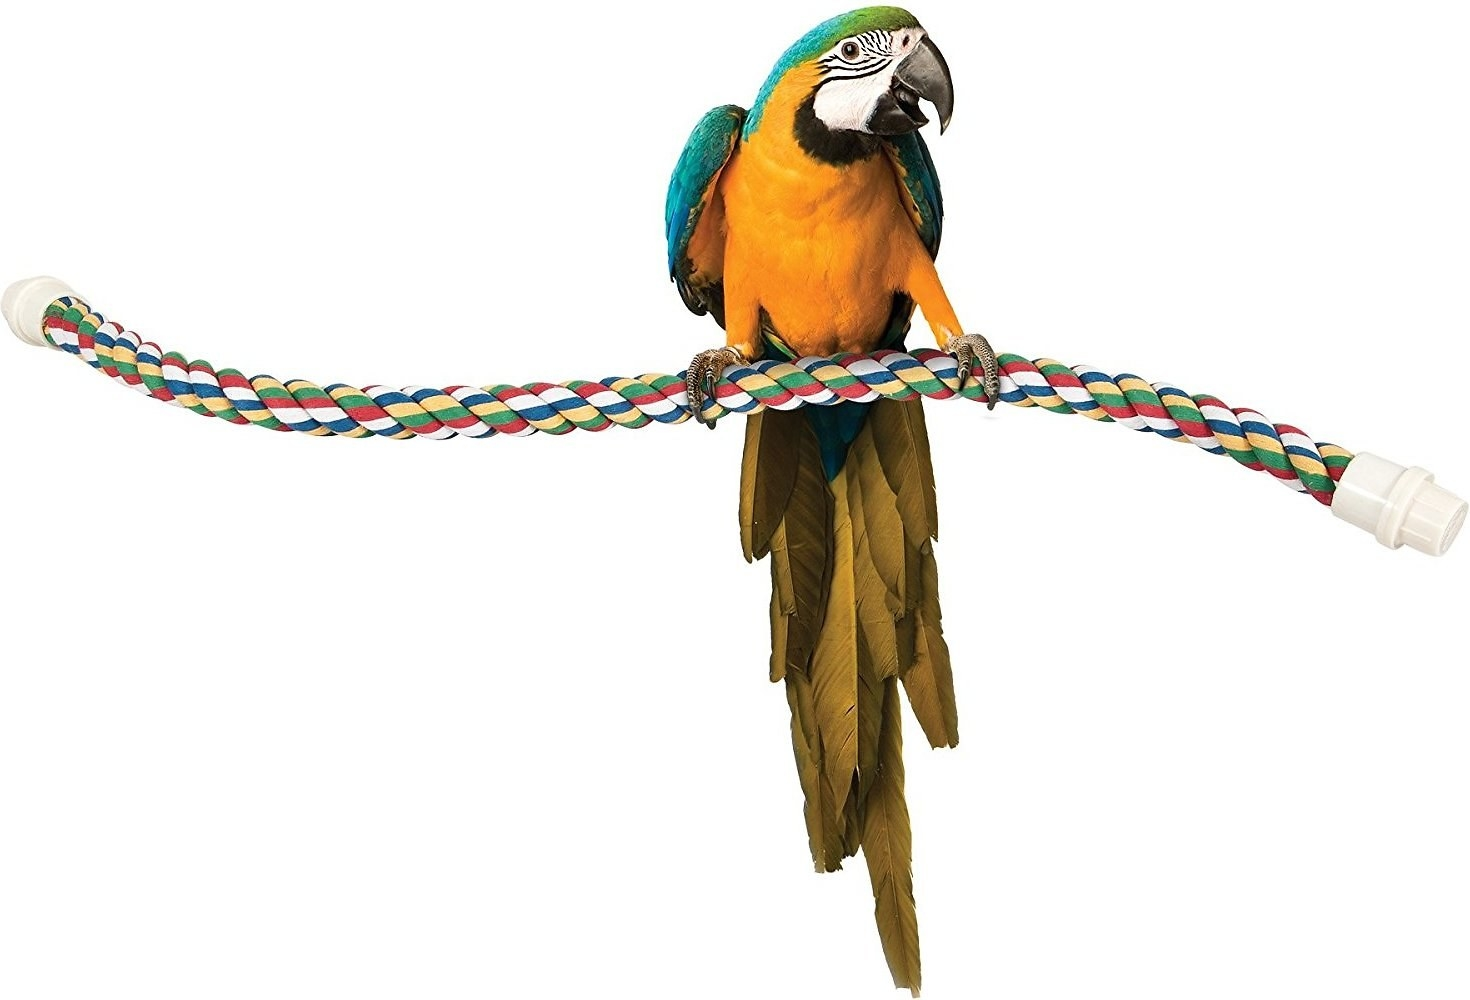 a parrot perching on the rope